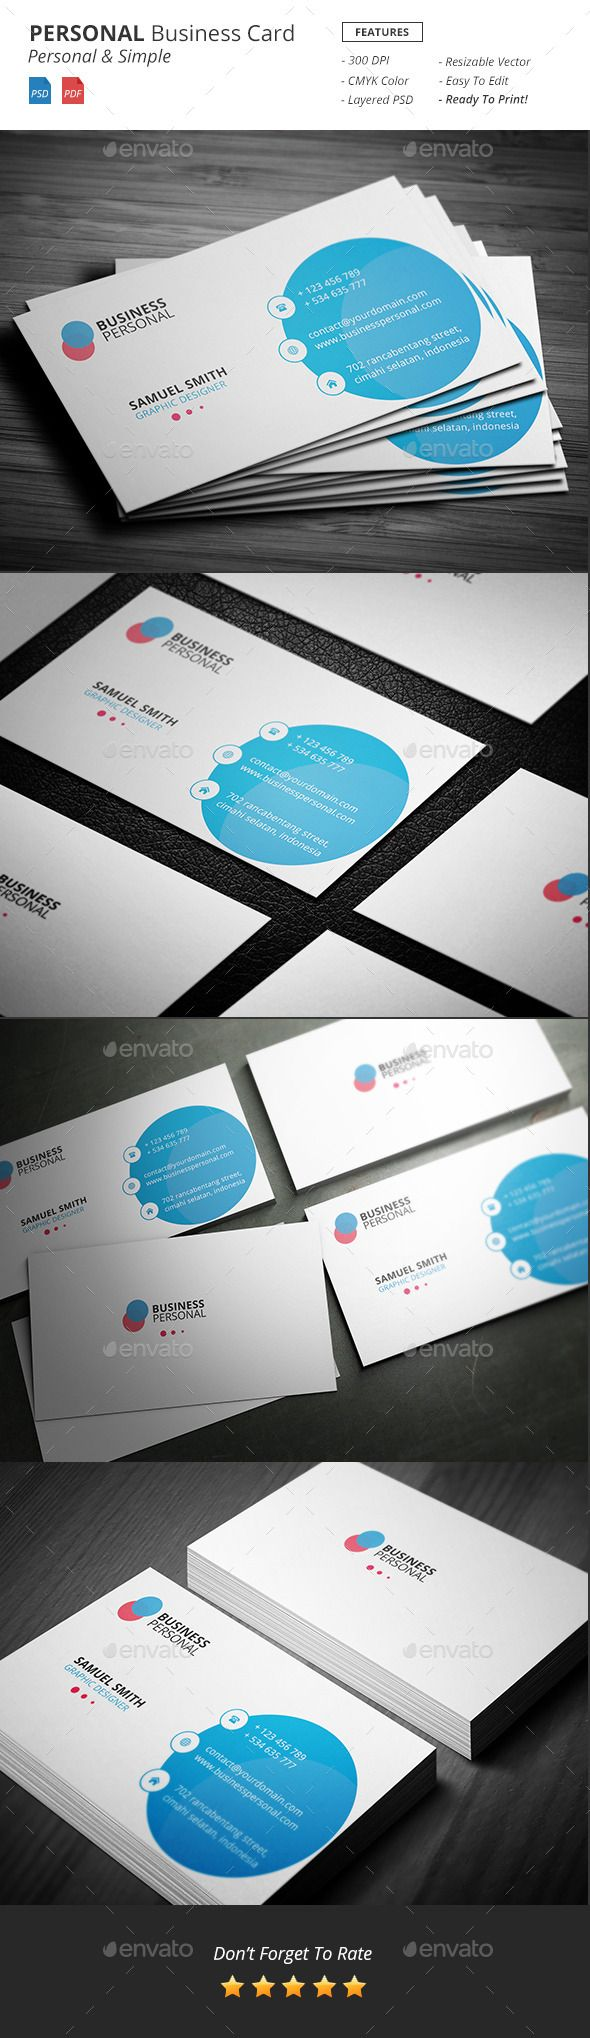 Personal Business Card Template #design Download: http://graphicriver.net/item/personal-business-card/12423830?ref=ksioks